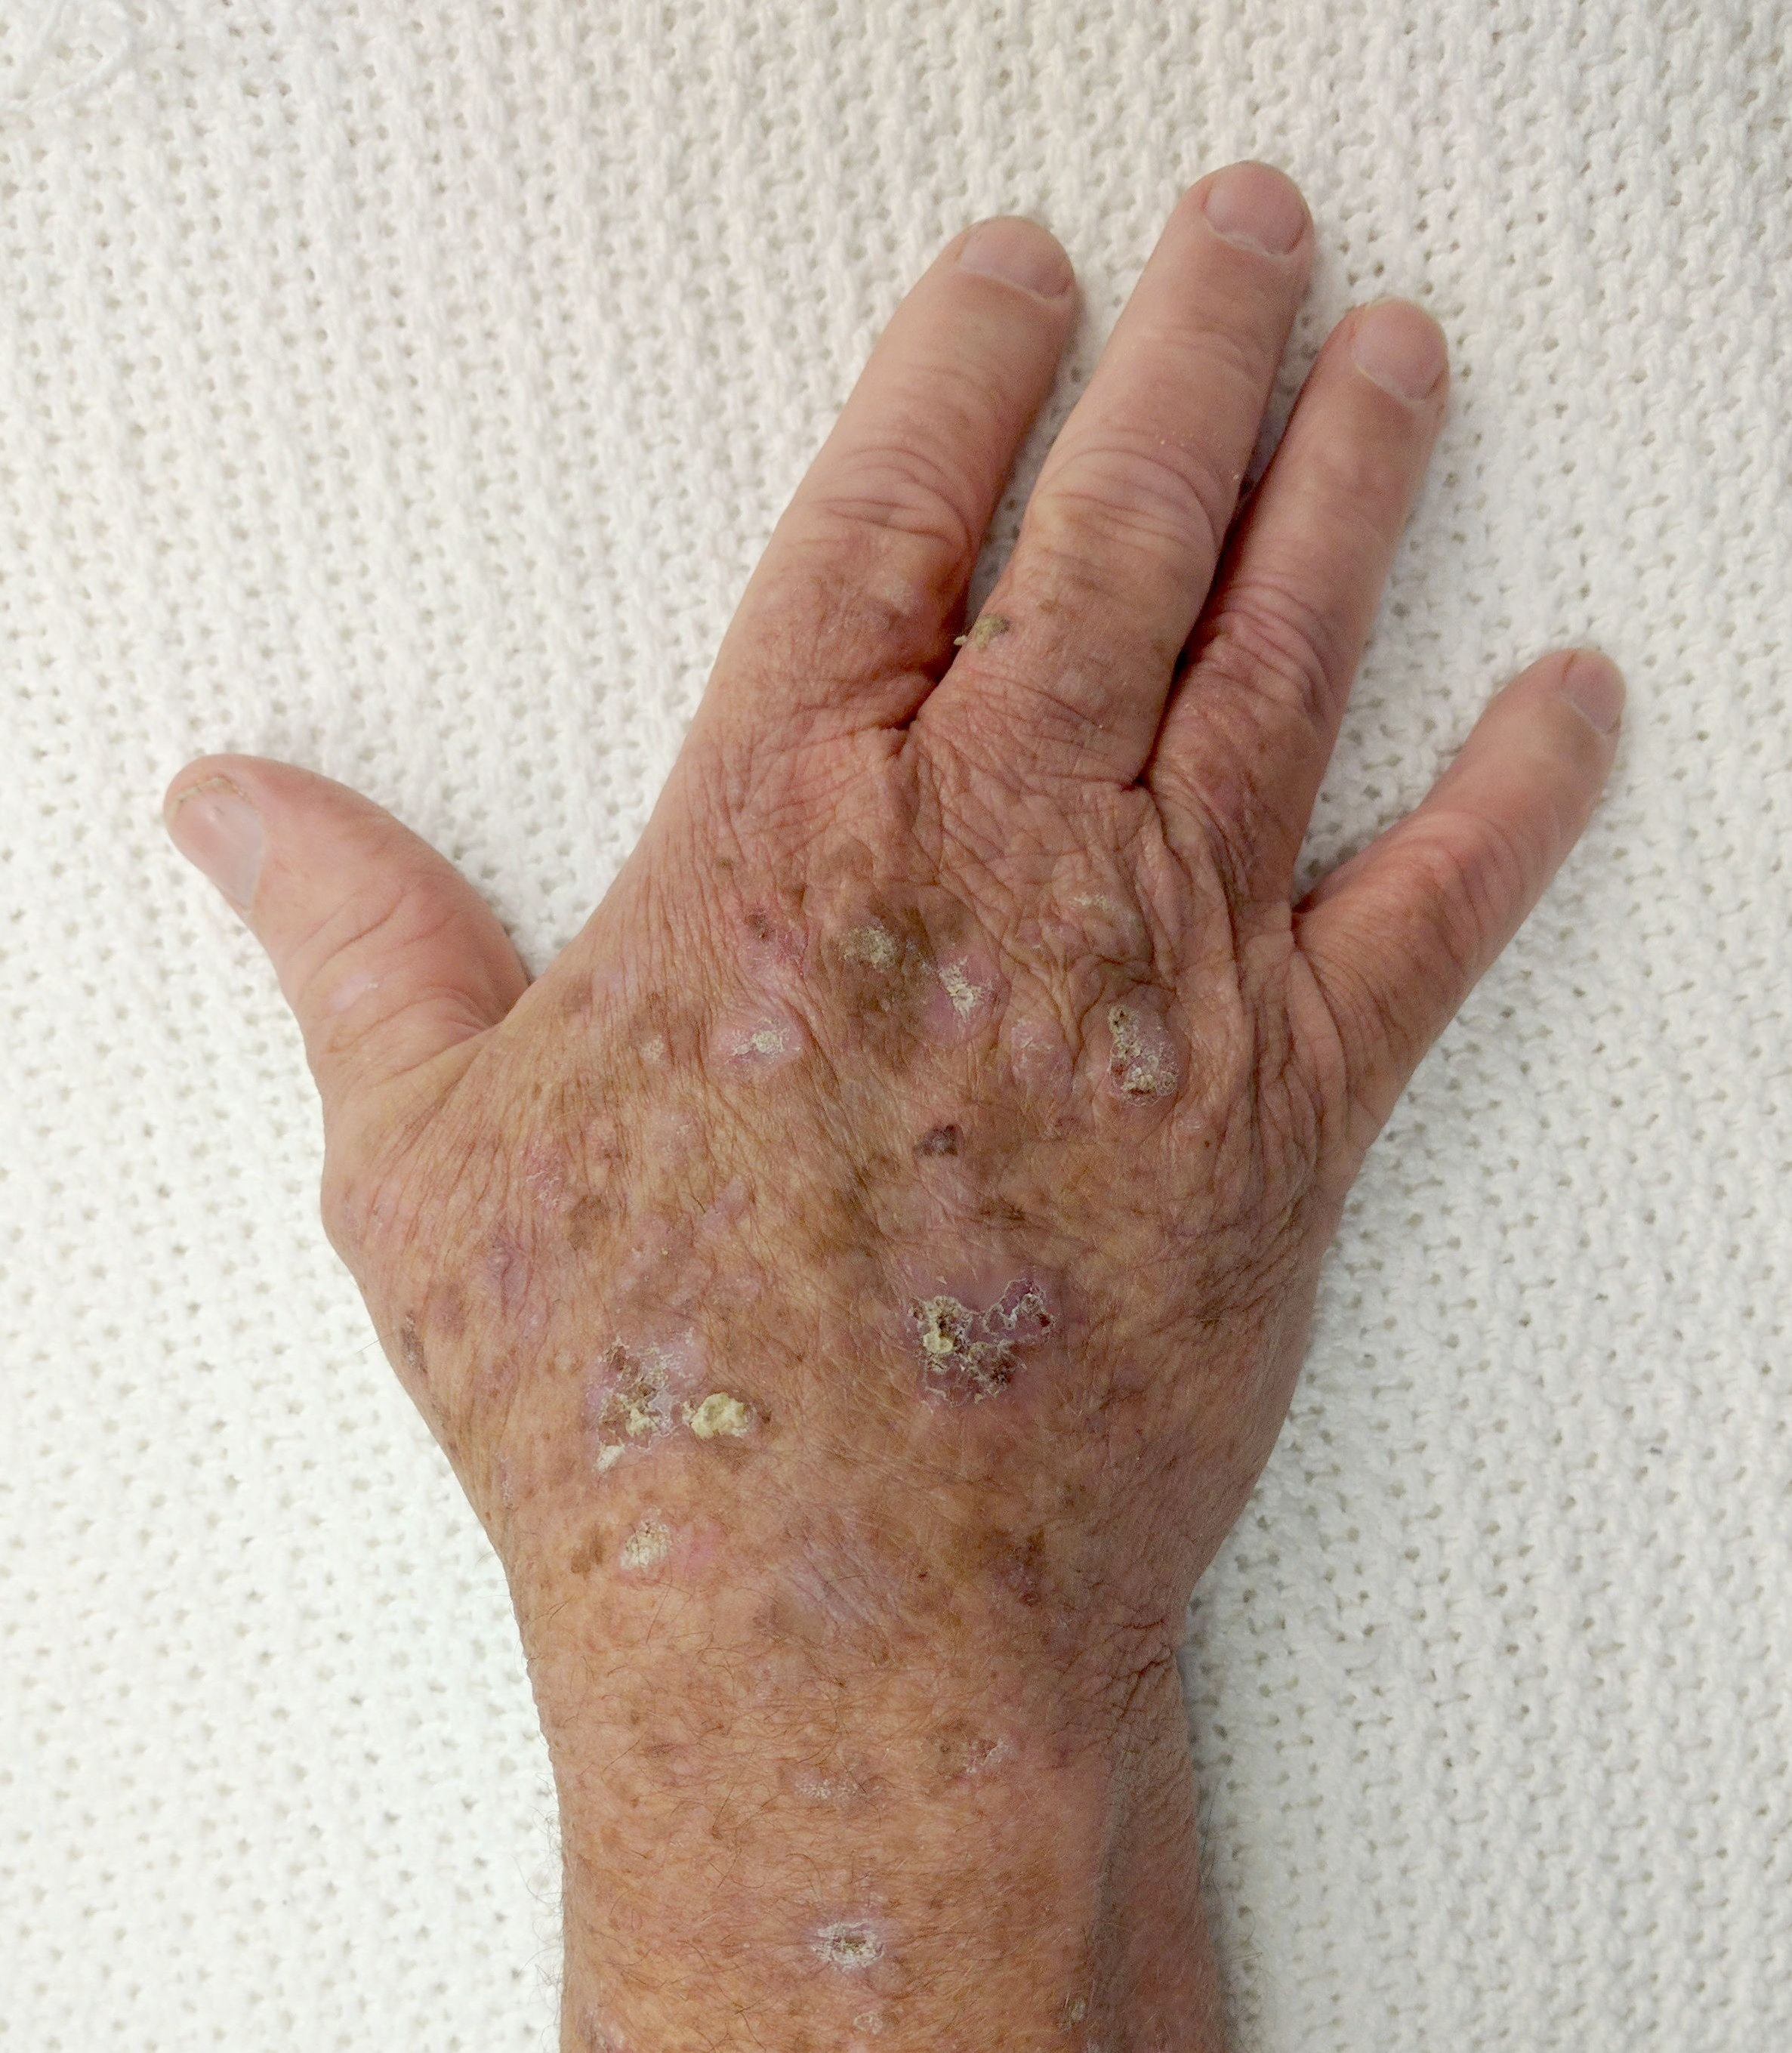 Actinic keratosis - The complete information and online sale with